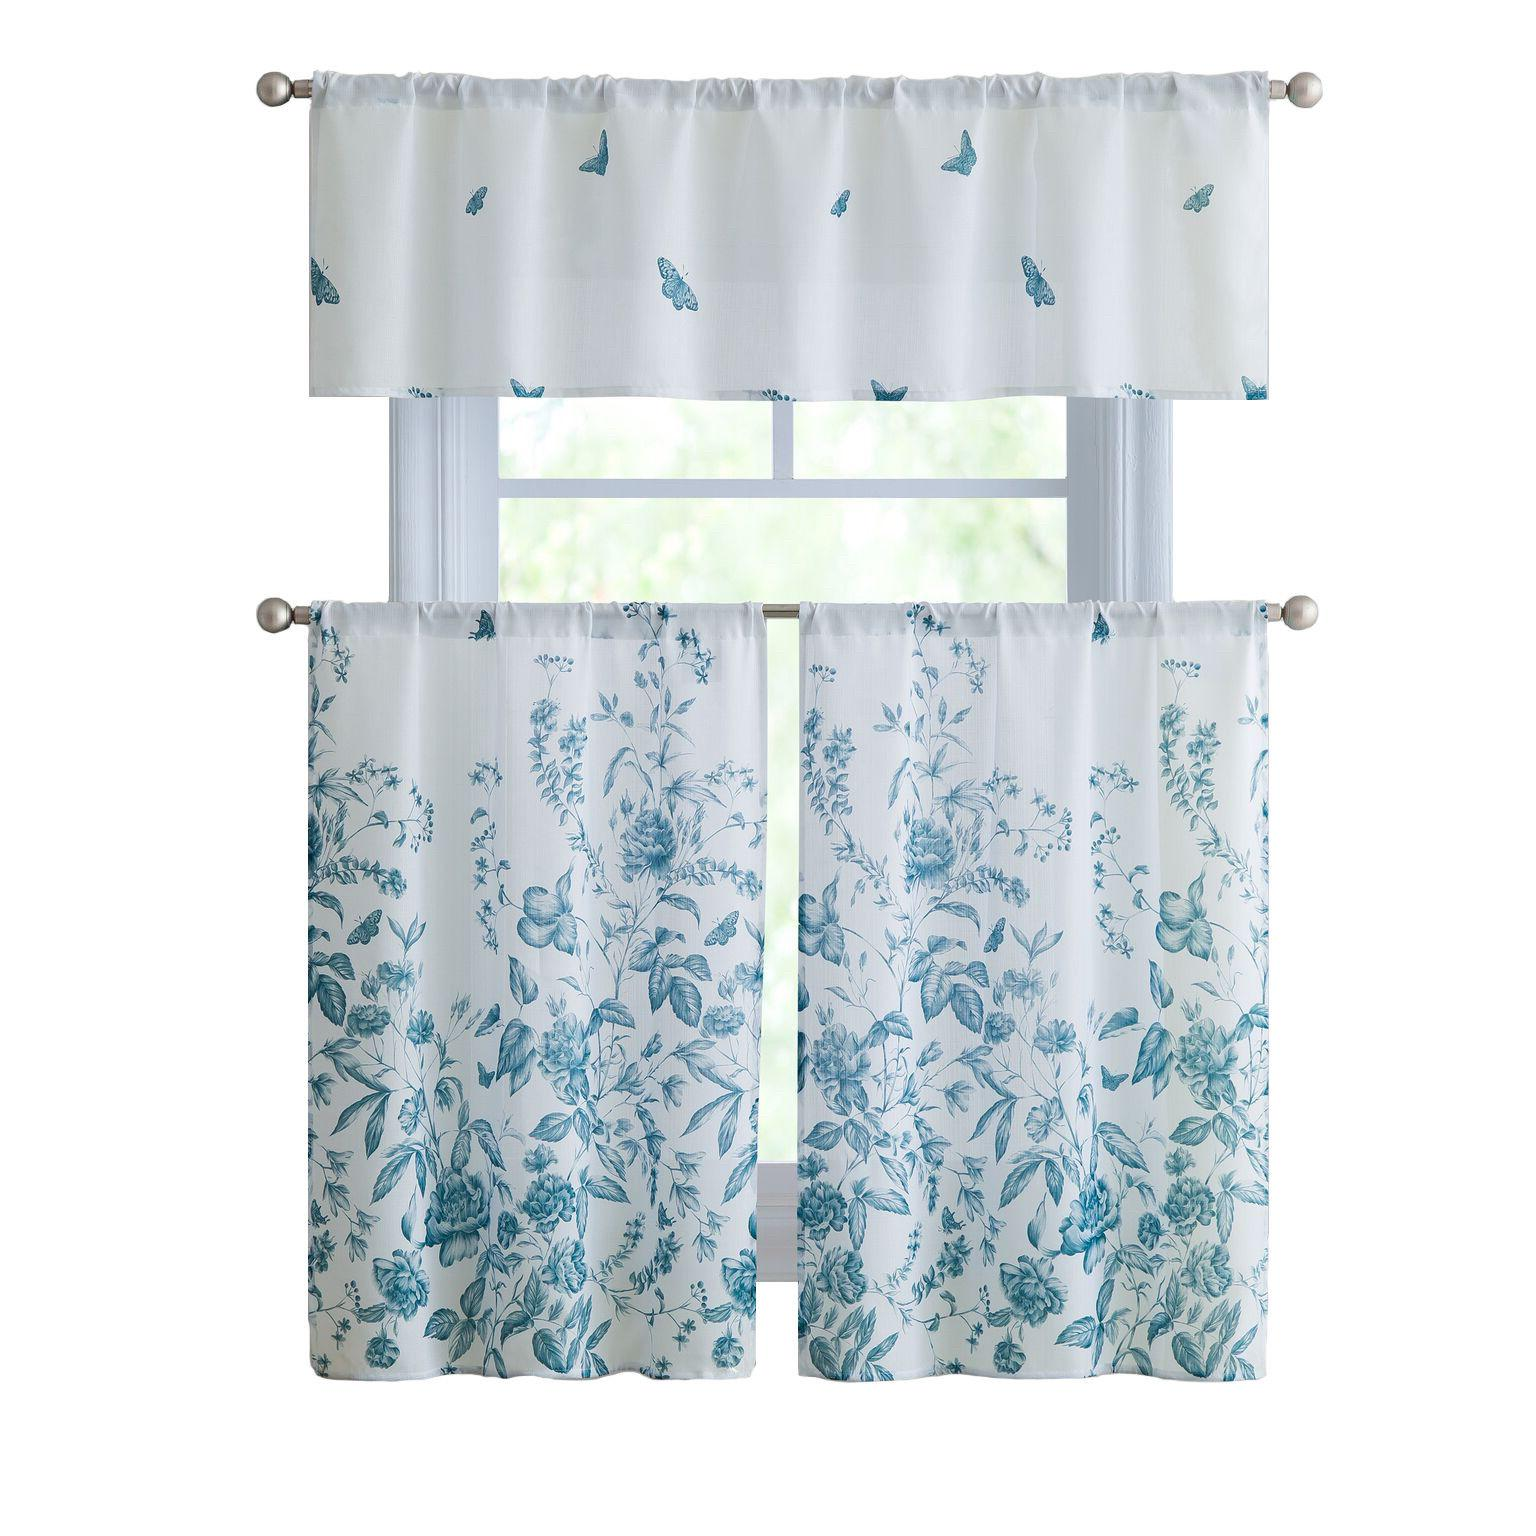 VCNY Home Kitchen Valance Assorted Colors